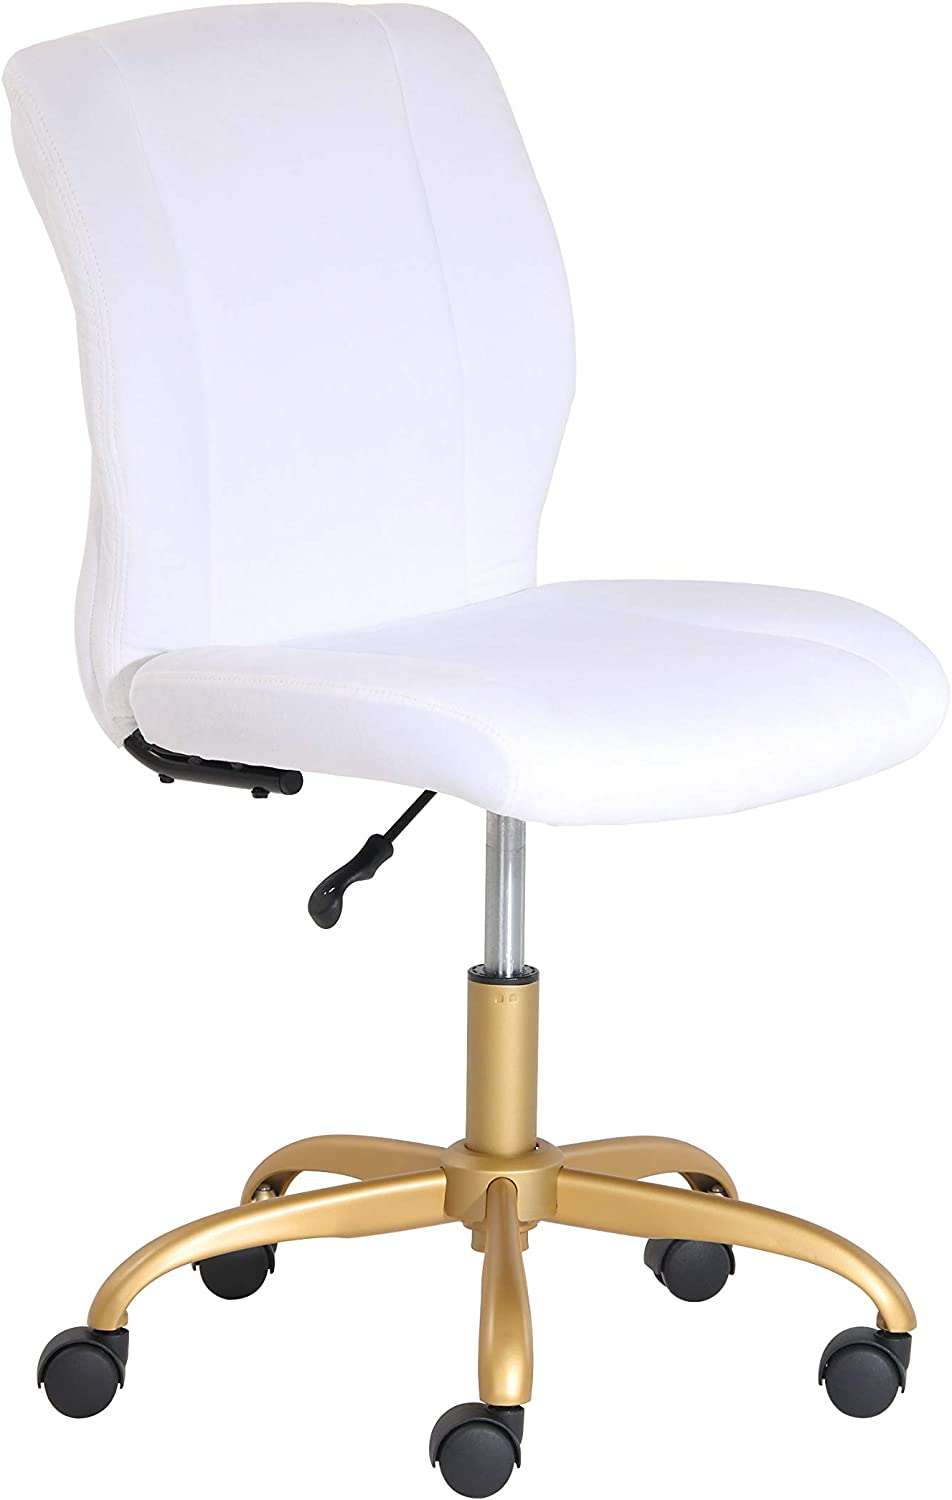 Mainstays White Plush Velvet Office Chair